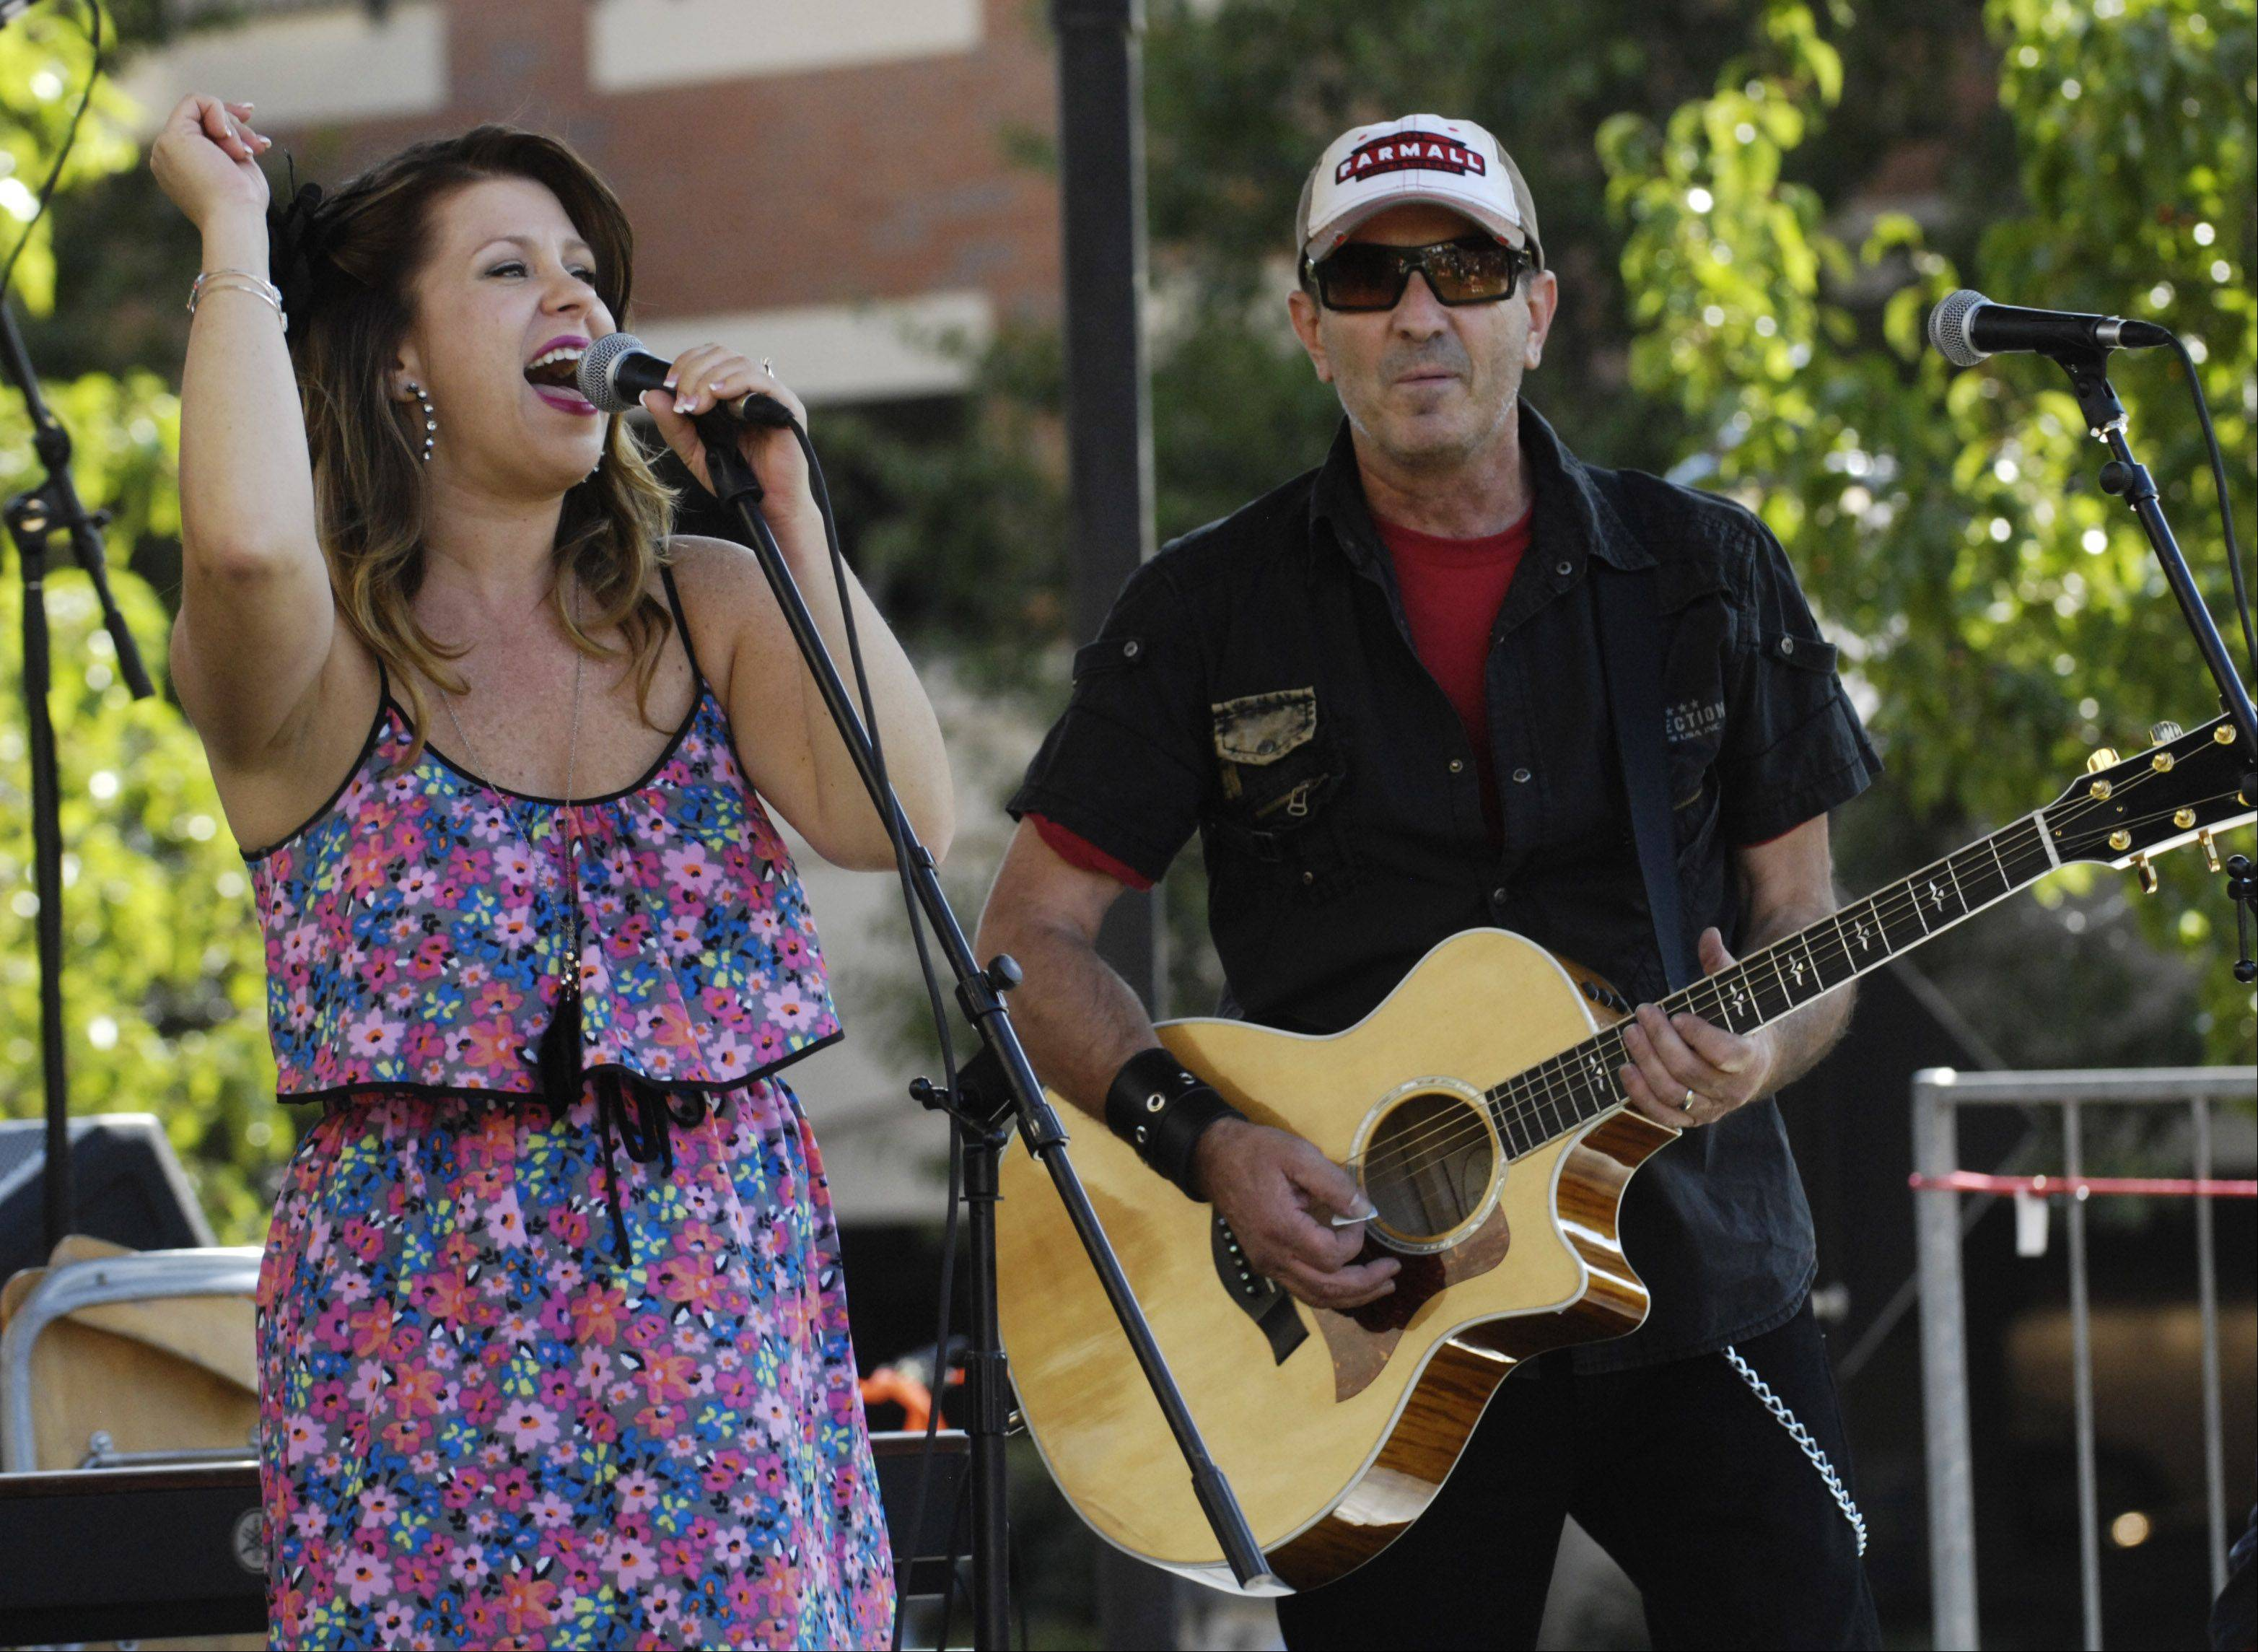 """Faith and Whisky"" with singer Camille Eiseman and guitarist/singer Terry Tank, both of Crystal Lake, performs during the Suburban Chicago's Got Talent finals Saturday at the Mane Event in downtown Arlington Heights."